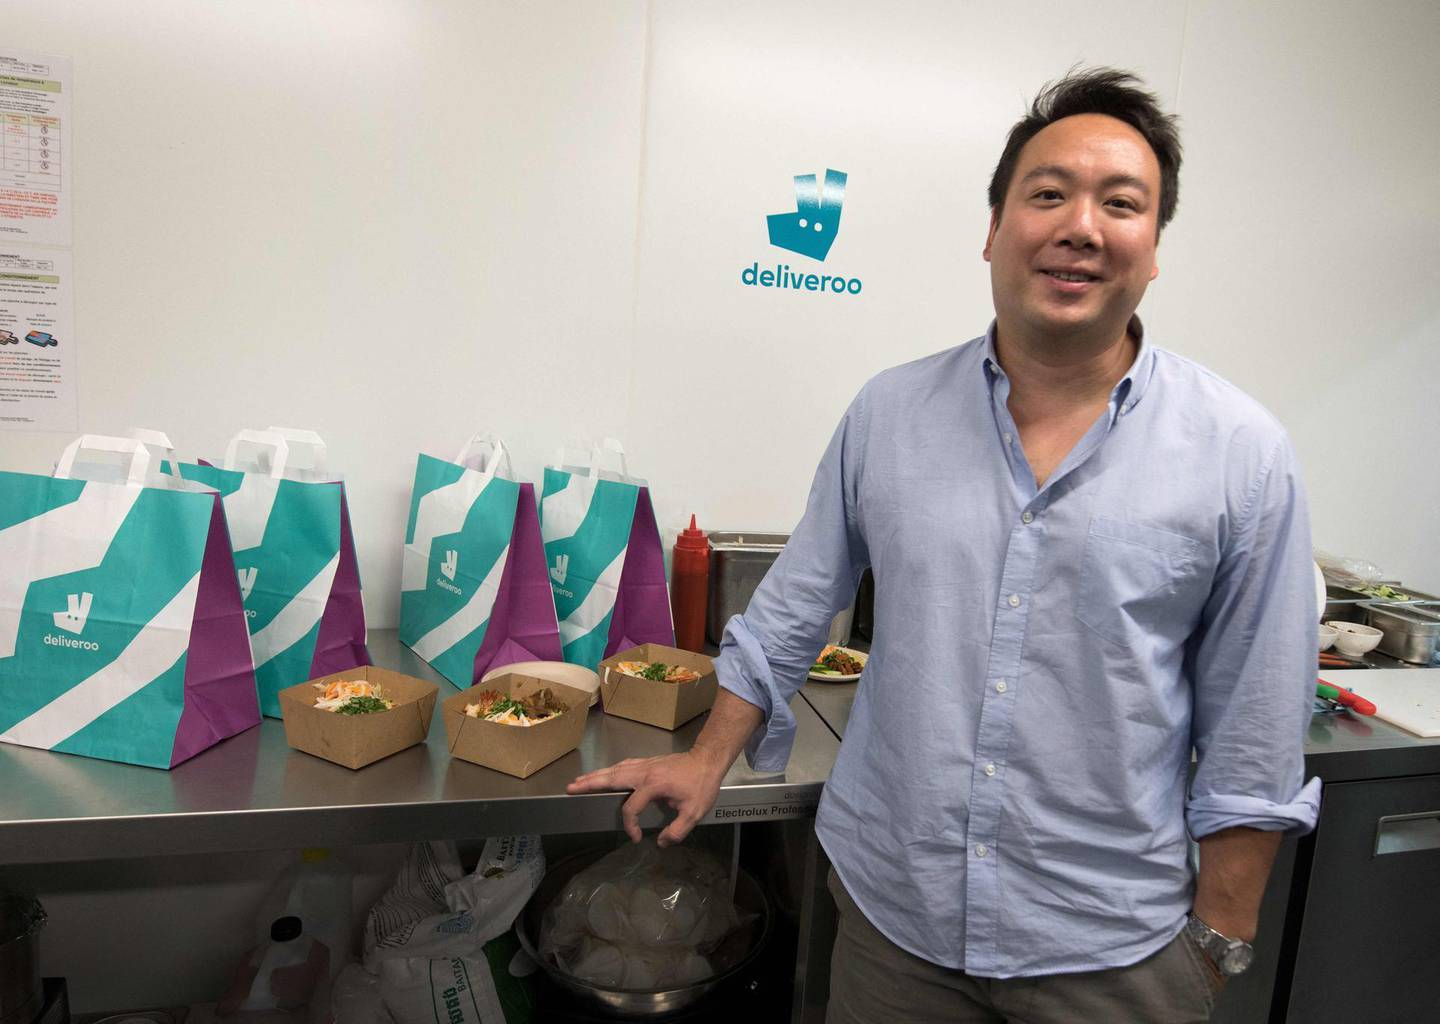 (FILES) In this file photo taken on July 03, 2018 co-founder and CEO of Deliveroo, William Shu, poses during the launch of first kitchen Deliveroo Editions in France,  in Saint-Ouen, outside Paris. Britain's app-driven food delivery firm Deliveroo is set for London's largest stock market launch in a decade with a valuation of £7.6 billion, despite mounting criticism over its treatment of riders on March 30, 2021. / AFP / GERARD JULIEN